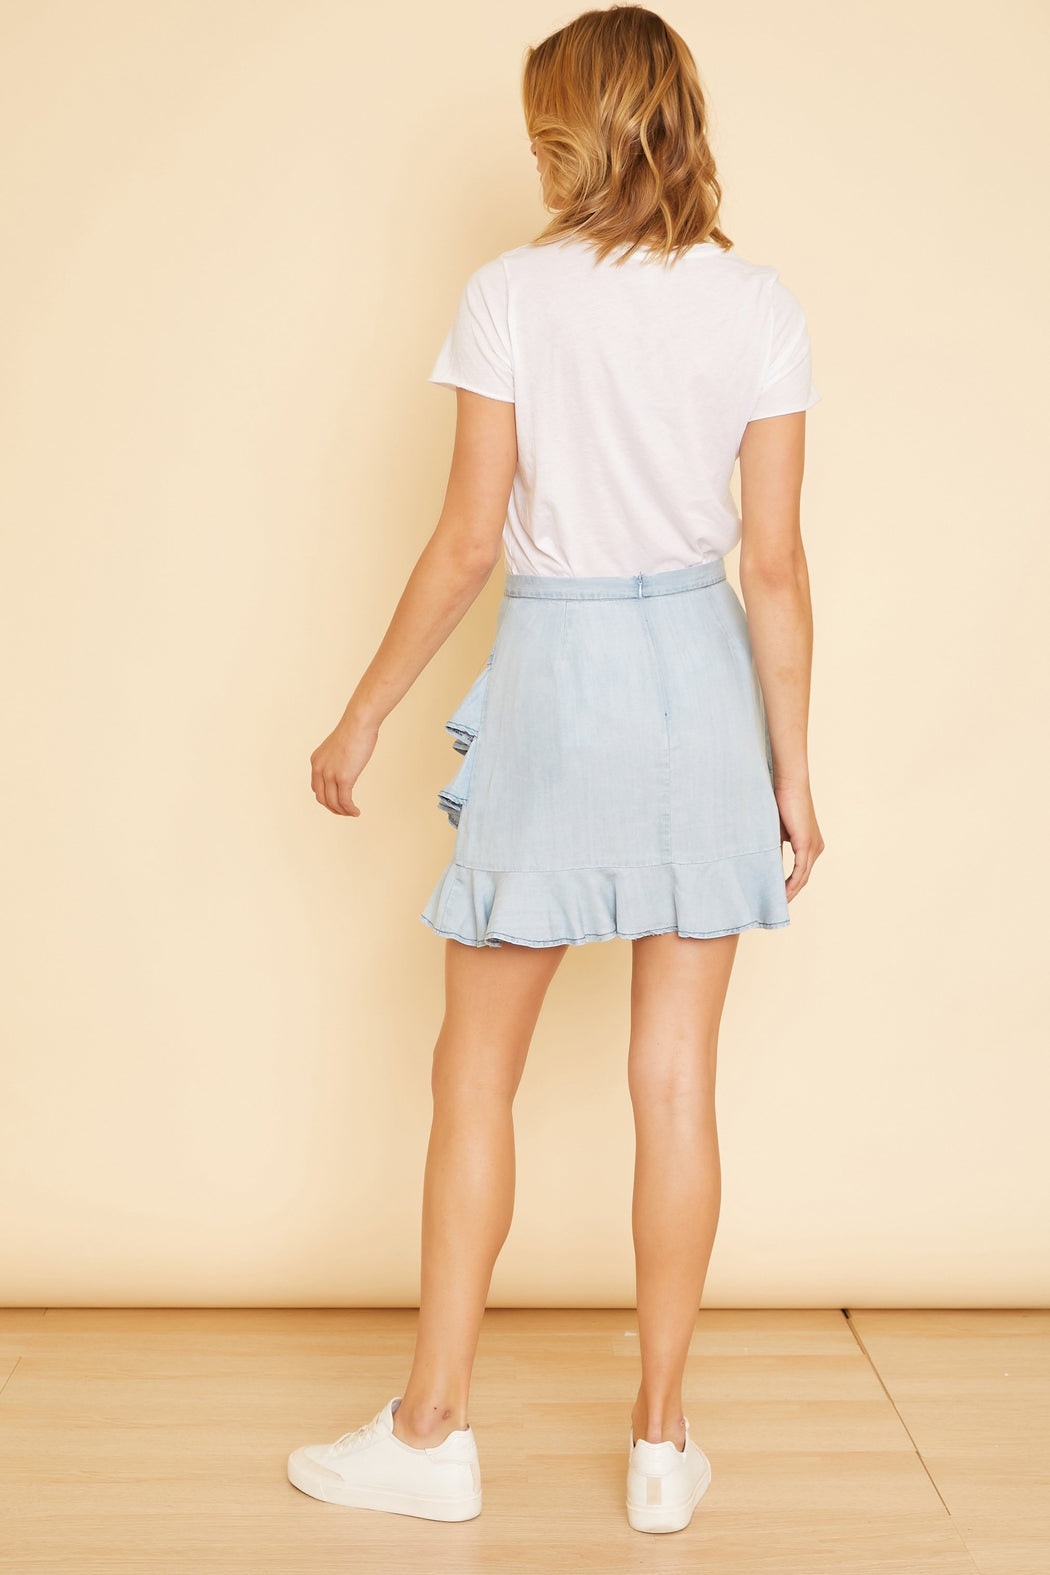 Ruffle Around Mini Skirt - wearNYLA